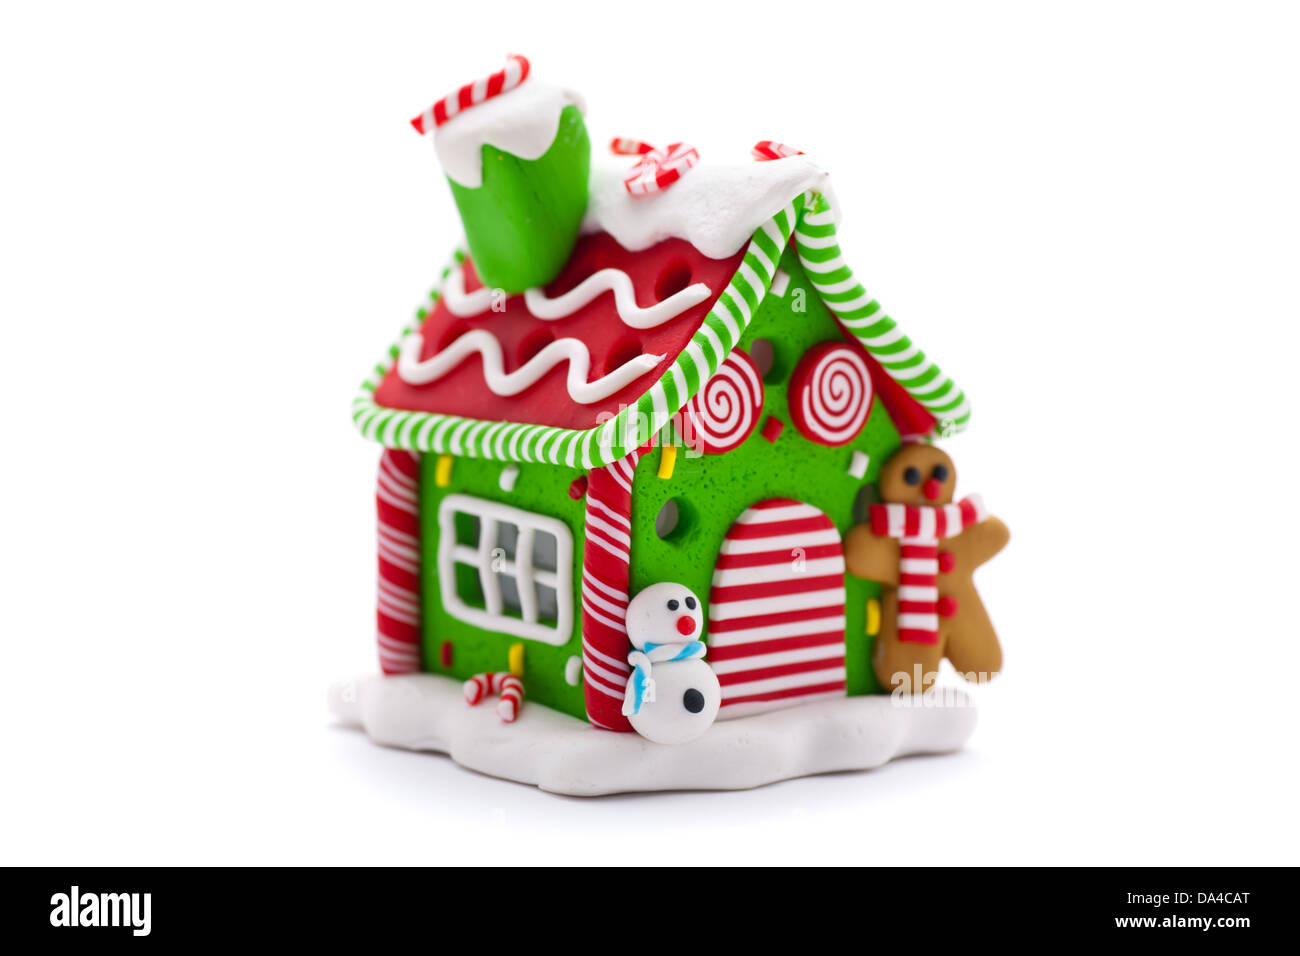 Christmas Gingerbread House Background.Christmas Gingerbread House Decoration On White Background